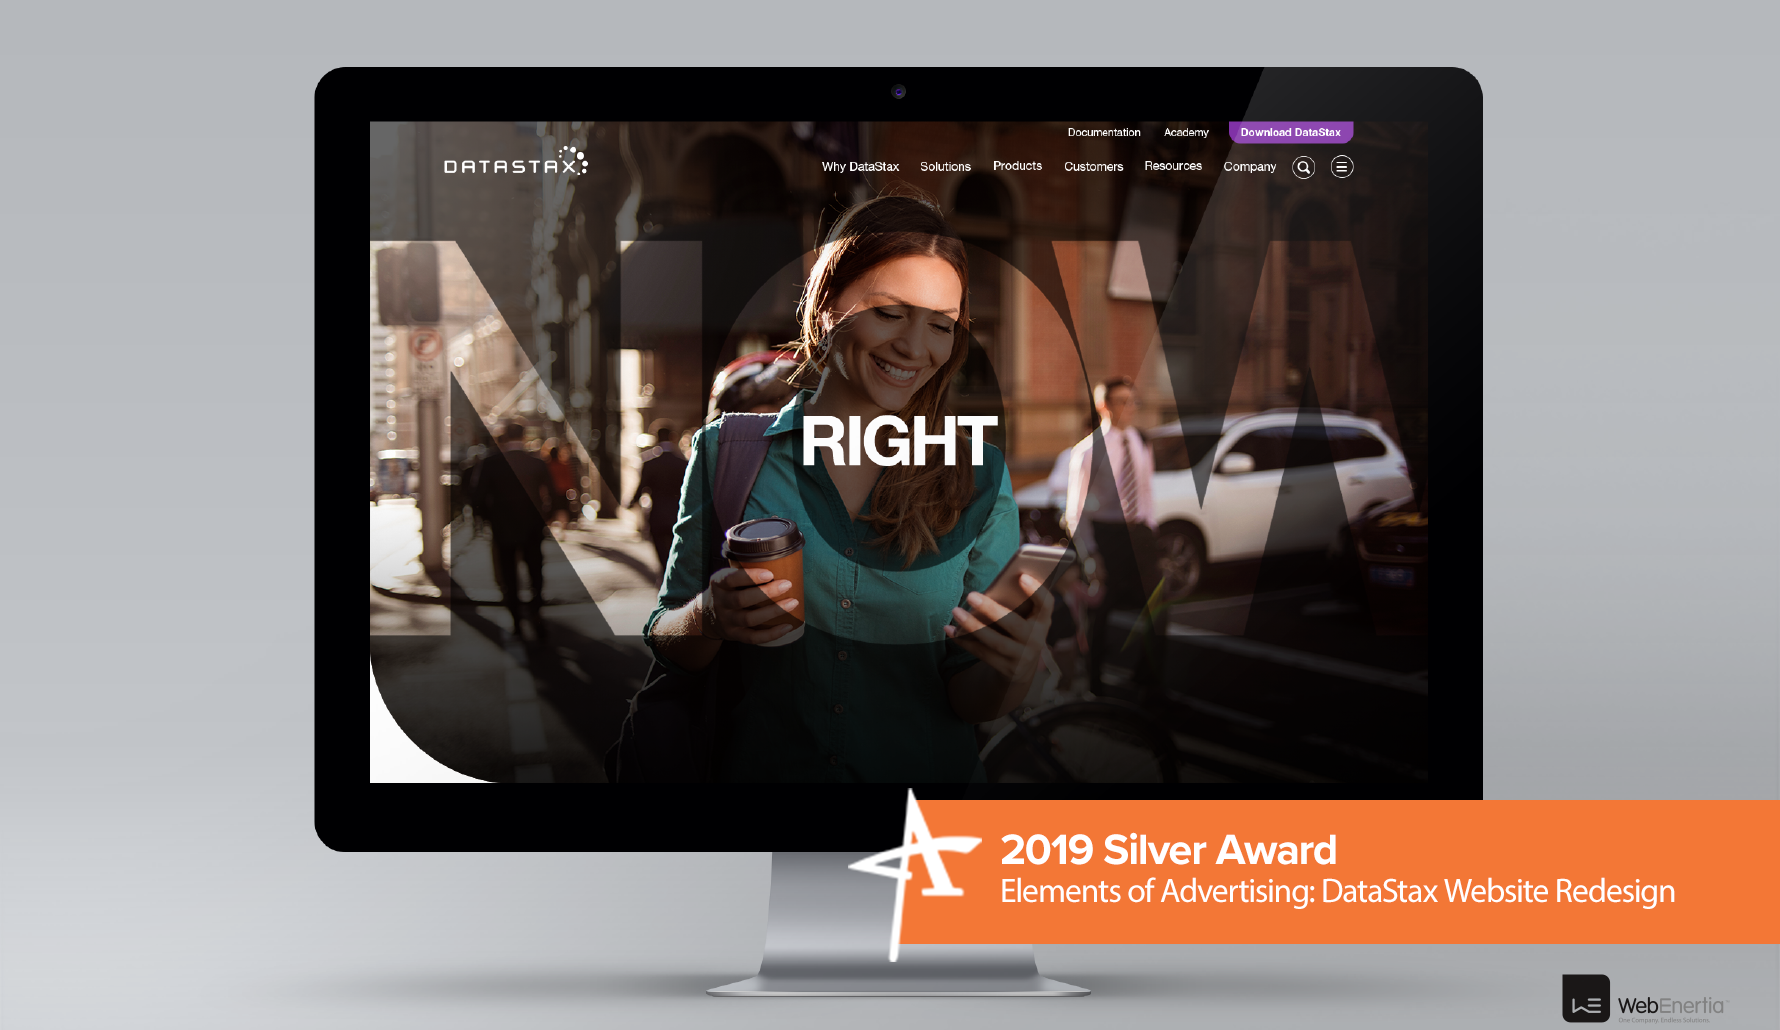 2019 Silver Addy Award - Elements of Advertising: DataStax Website Redesign